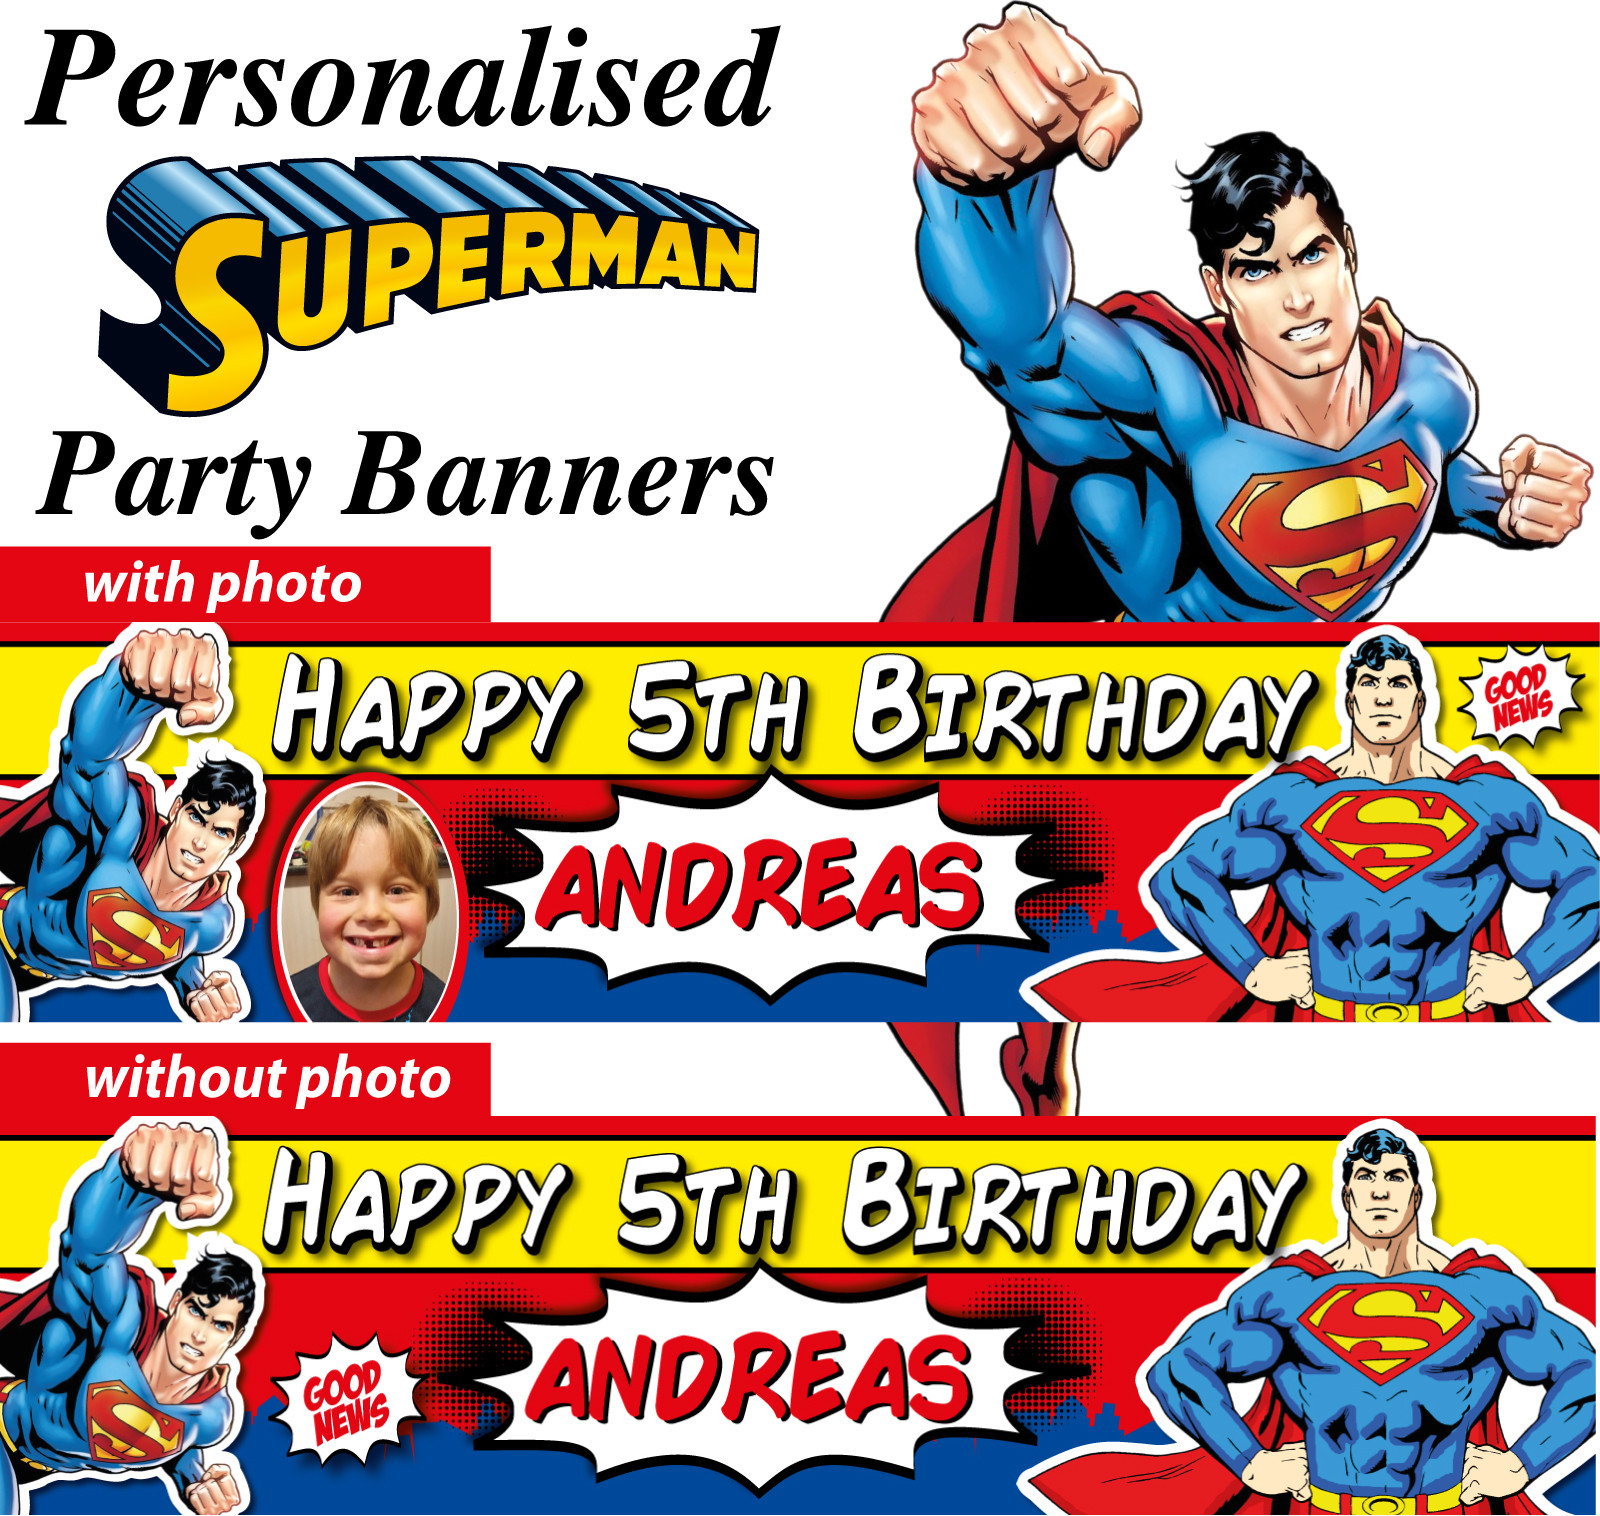 Best ideas about Personalised Birthday Decorations . Save or Pin Personalised Superman Birthday Party Banners Decorations Now.